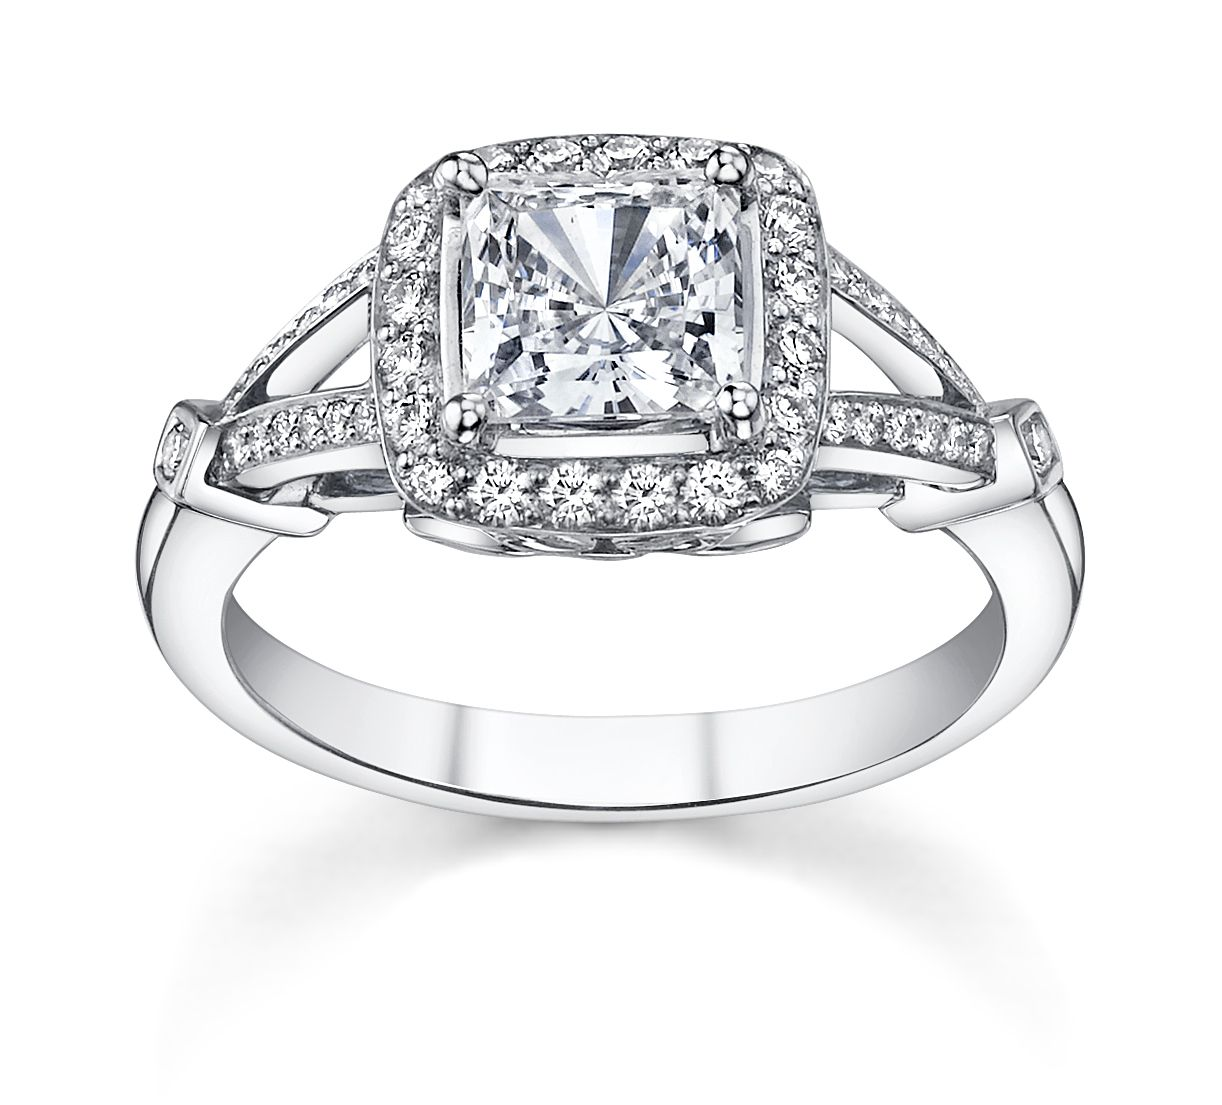 17 best images about designer engagement rings on pinterest hearts on fire white gold and radiant cut engagement rings